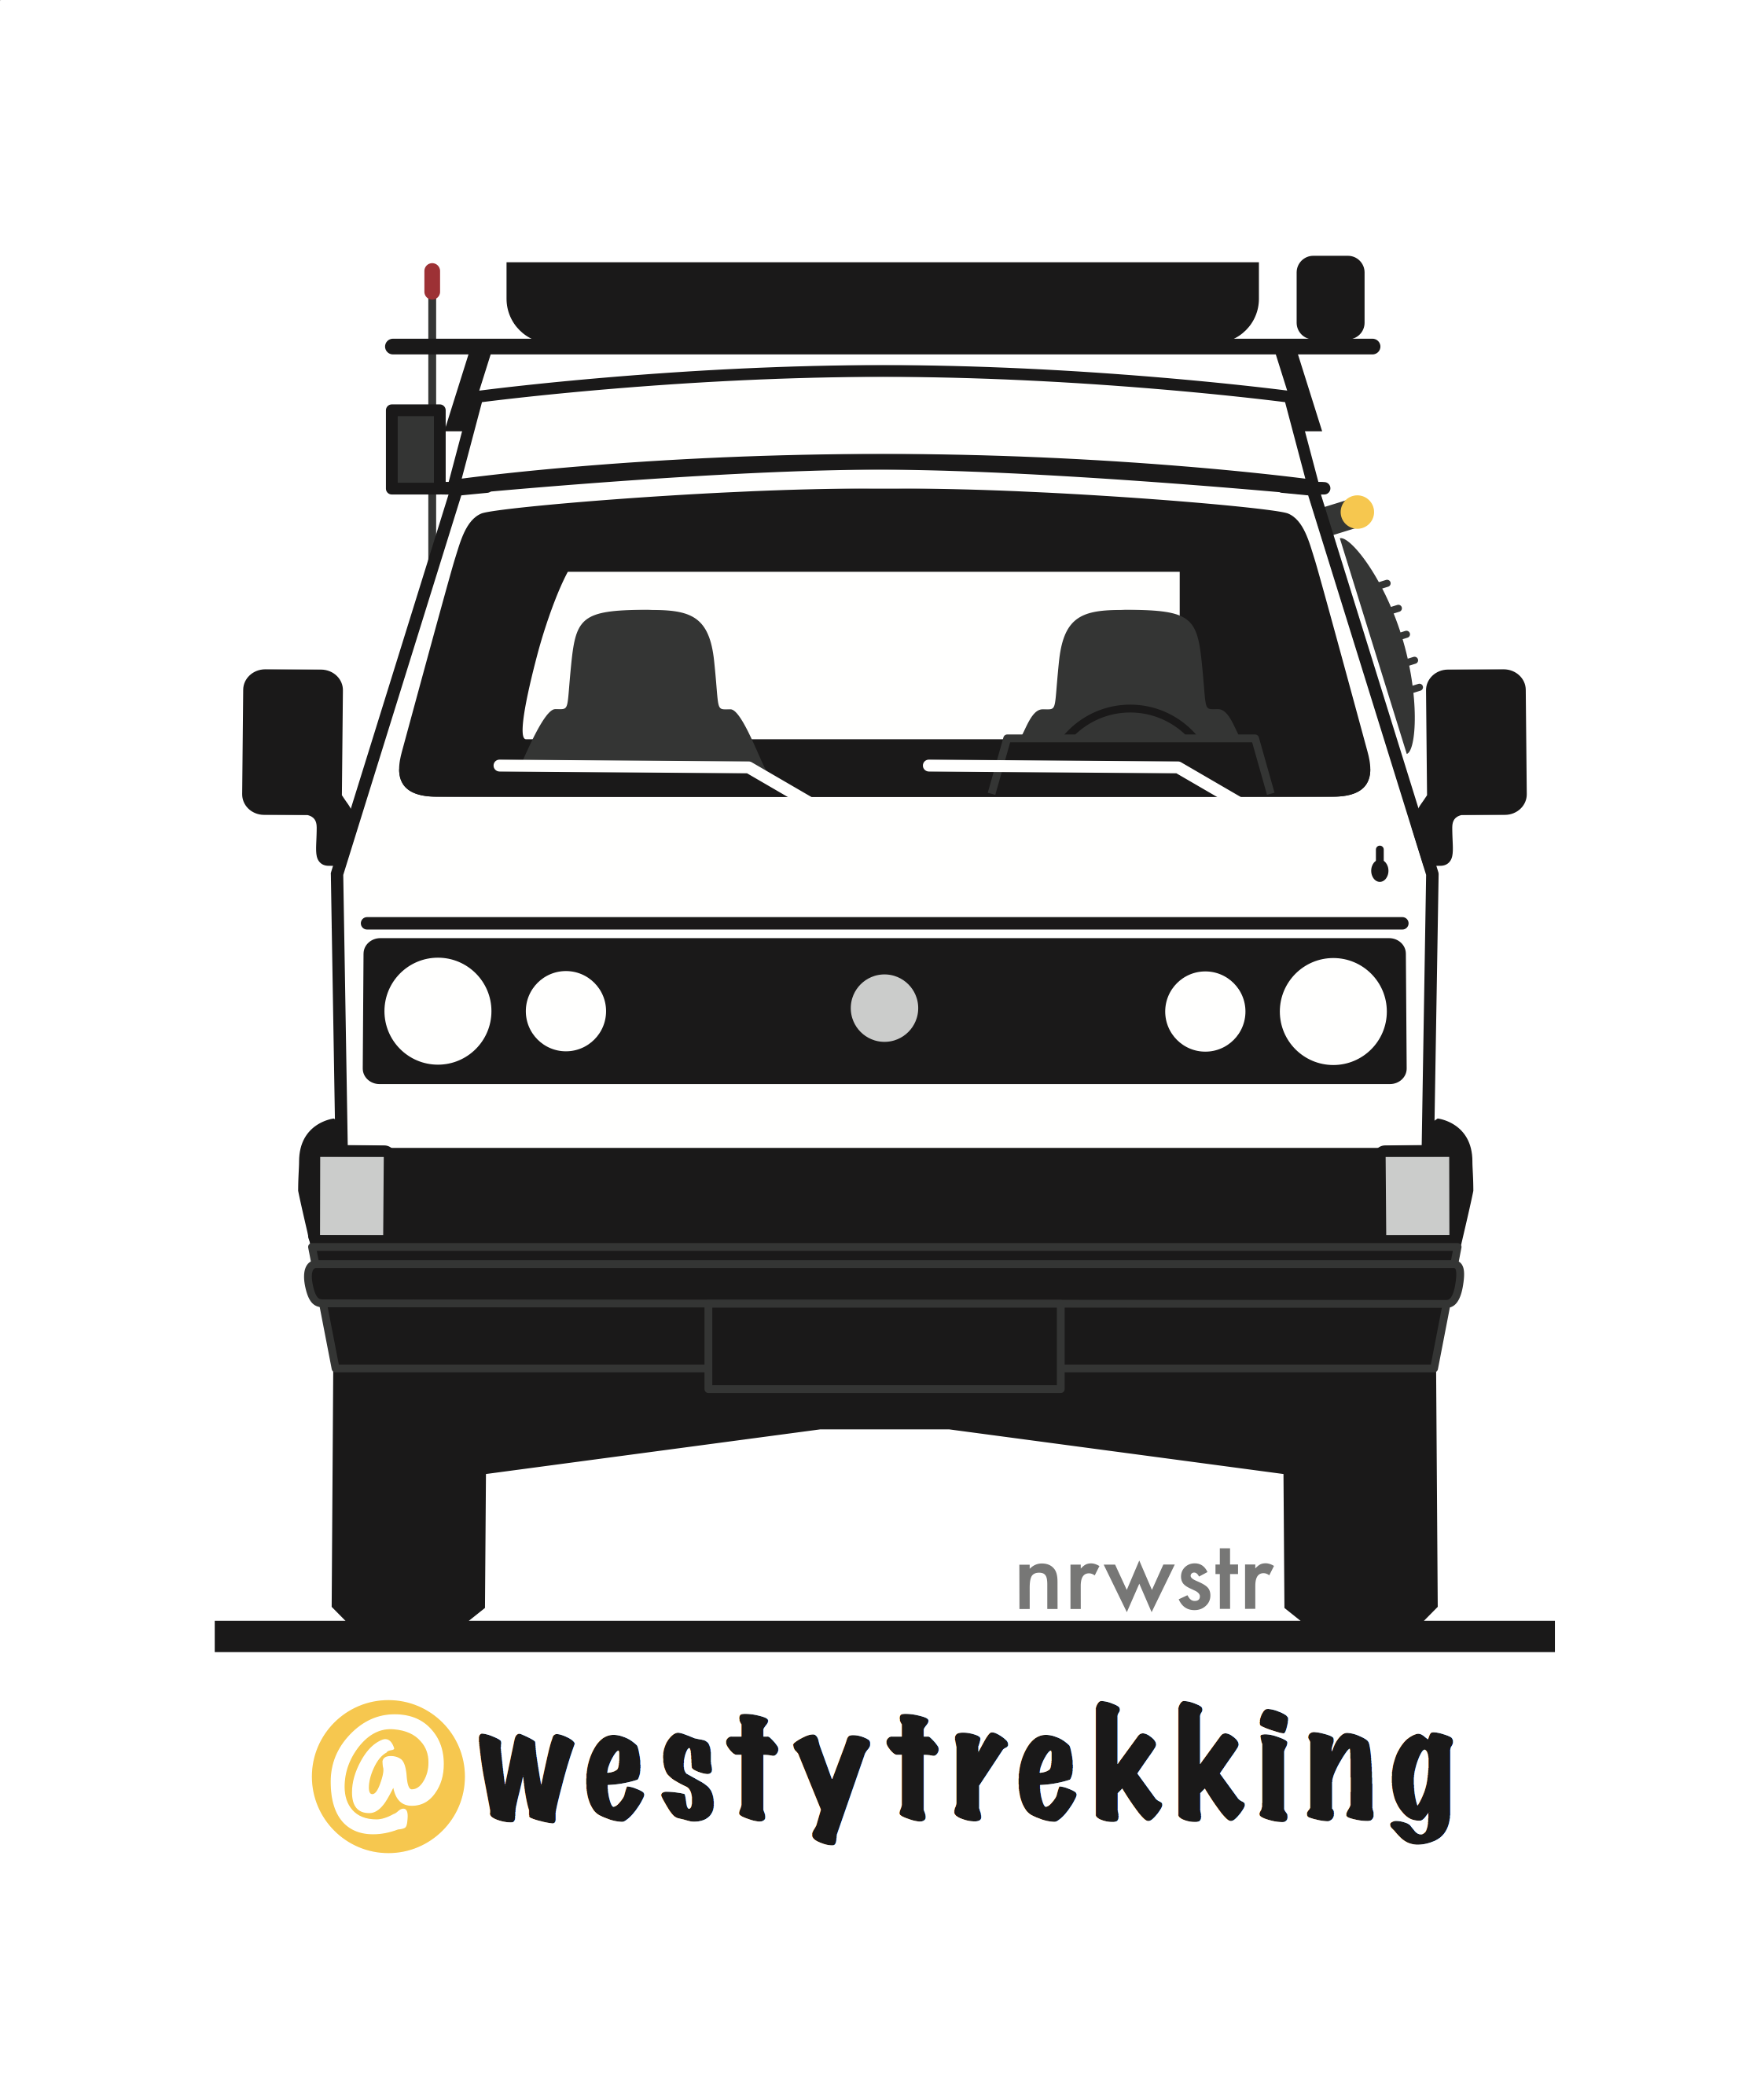 westytrekking front view.png